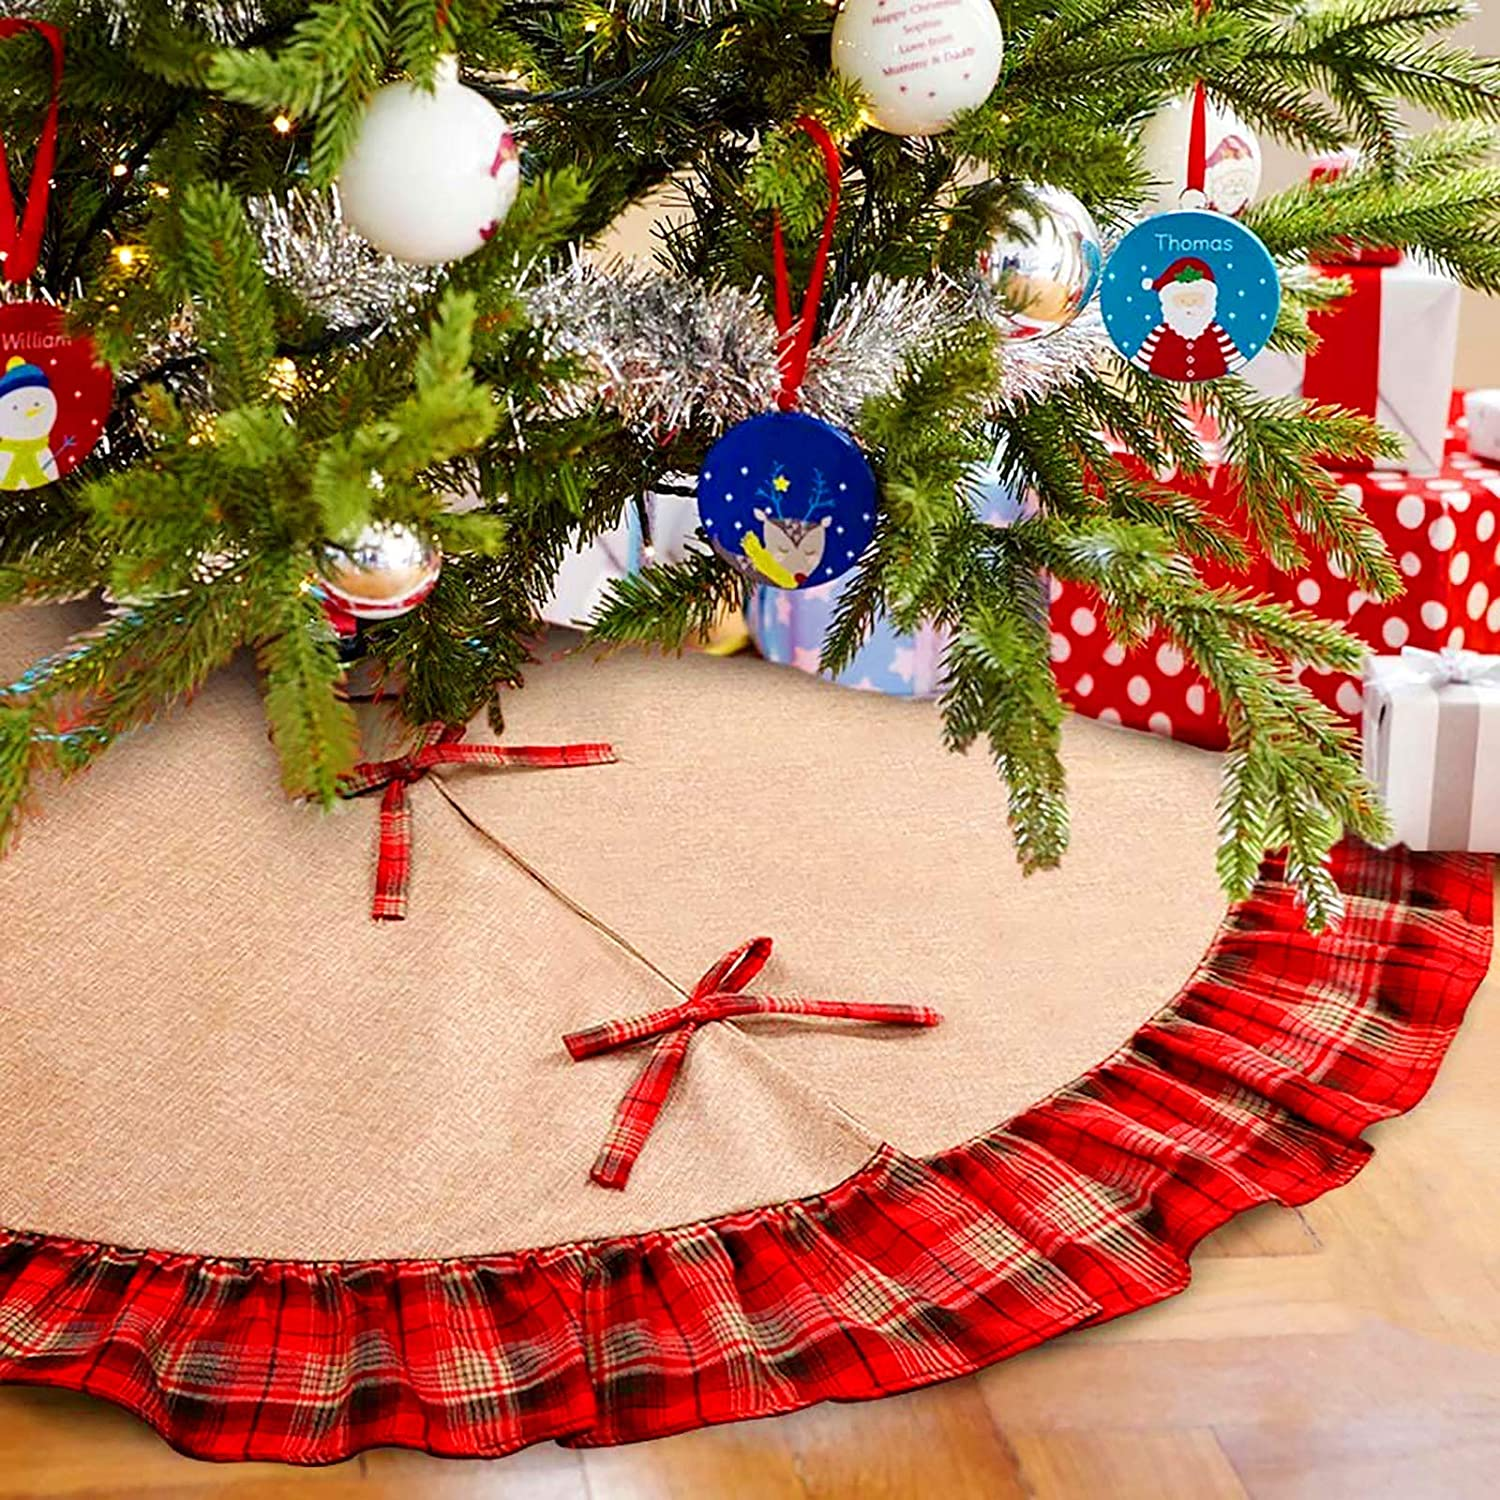 Cneng Christmas Tree Skirt 48 Inch Black and Red Buffalo Plaid Ruffle Tree Skirt Double Layers Burlap Tree Skirt for Christmas Home Decor New Year Party Holiday Decoration